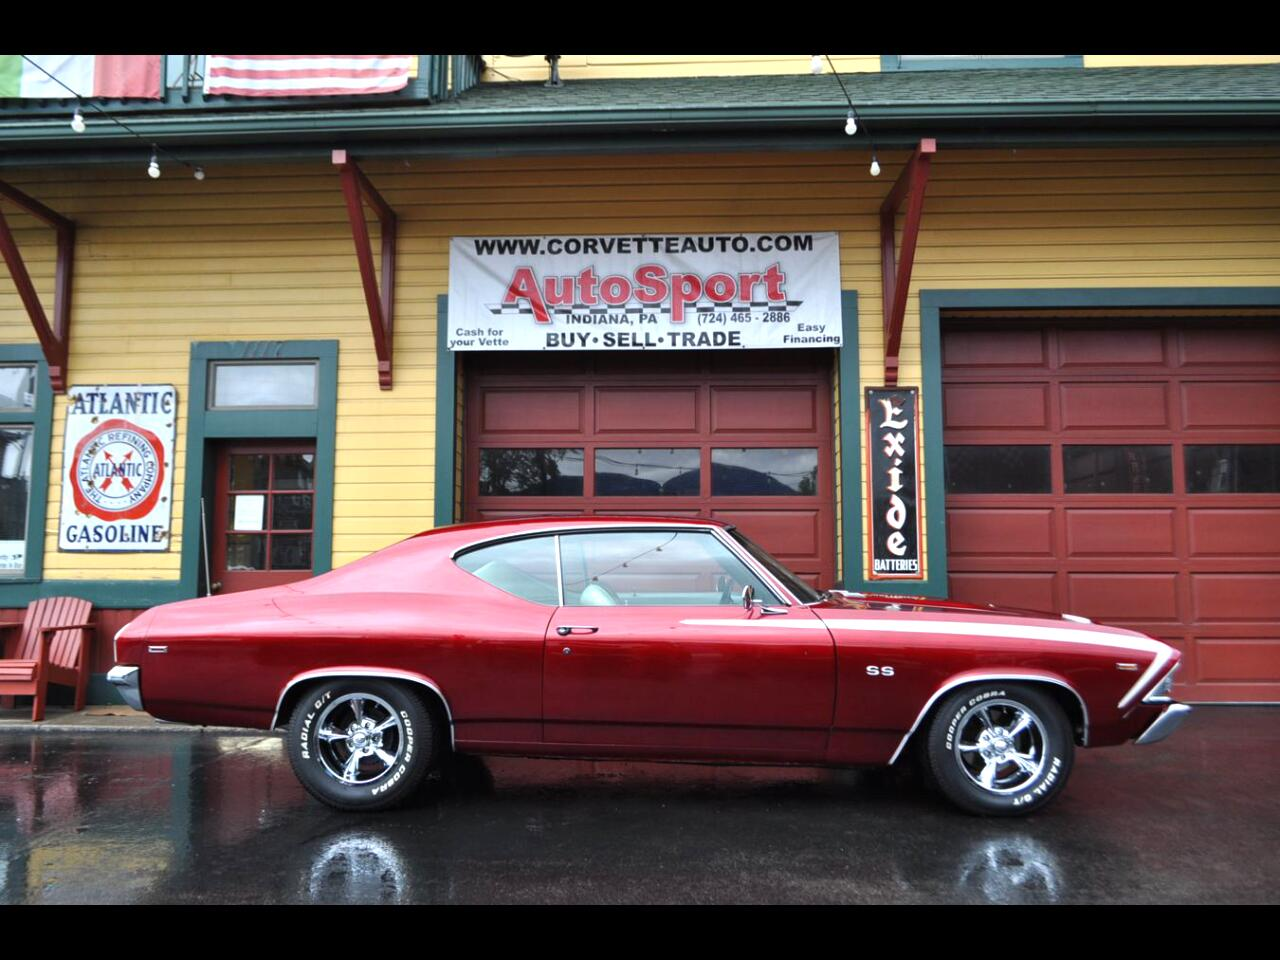 1969 Chevrolet Chevelle Frame Off Restored Cranberry Red/Pearl White 4sp A